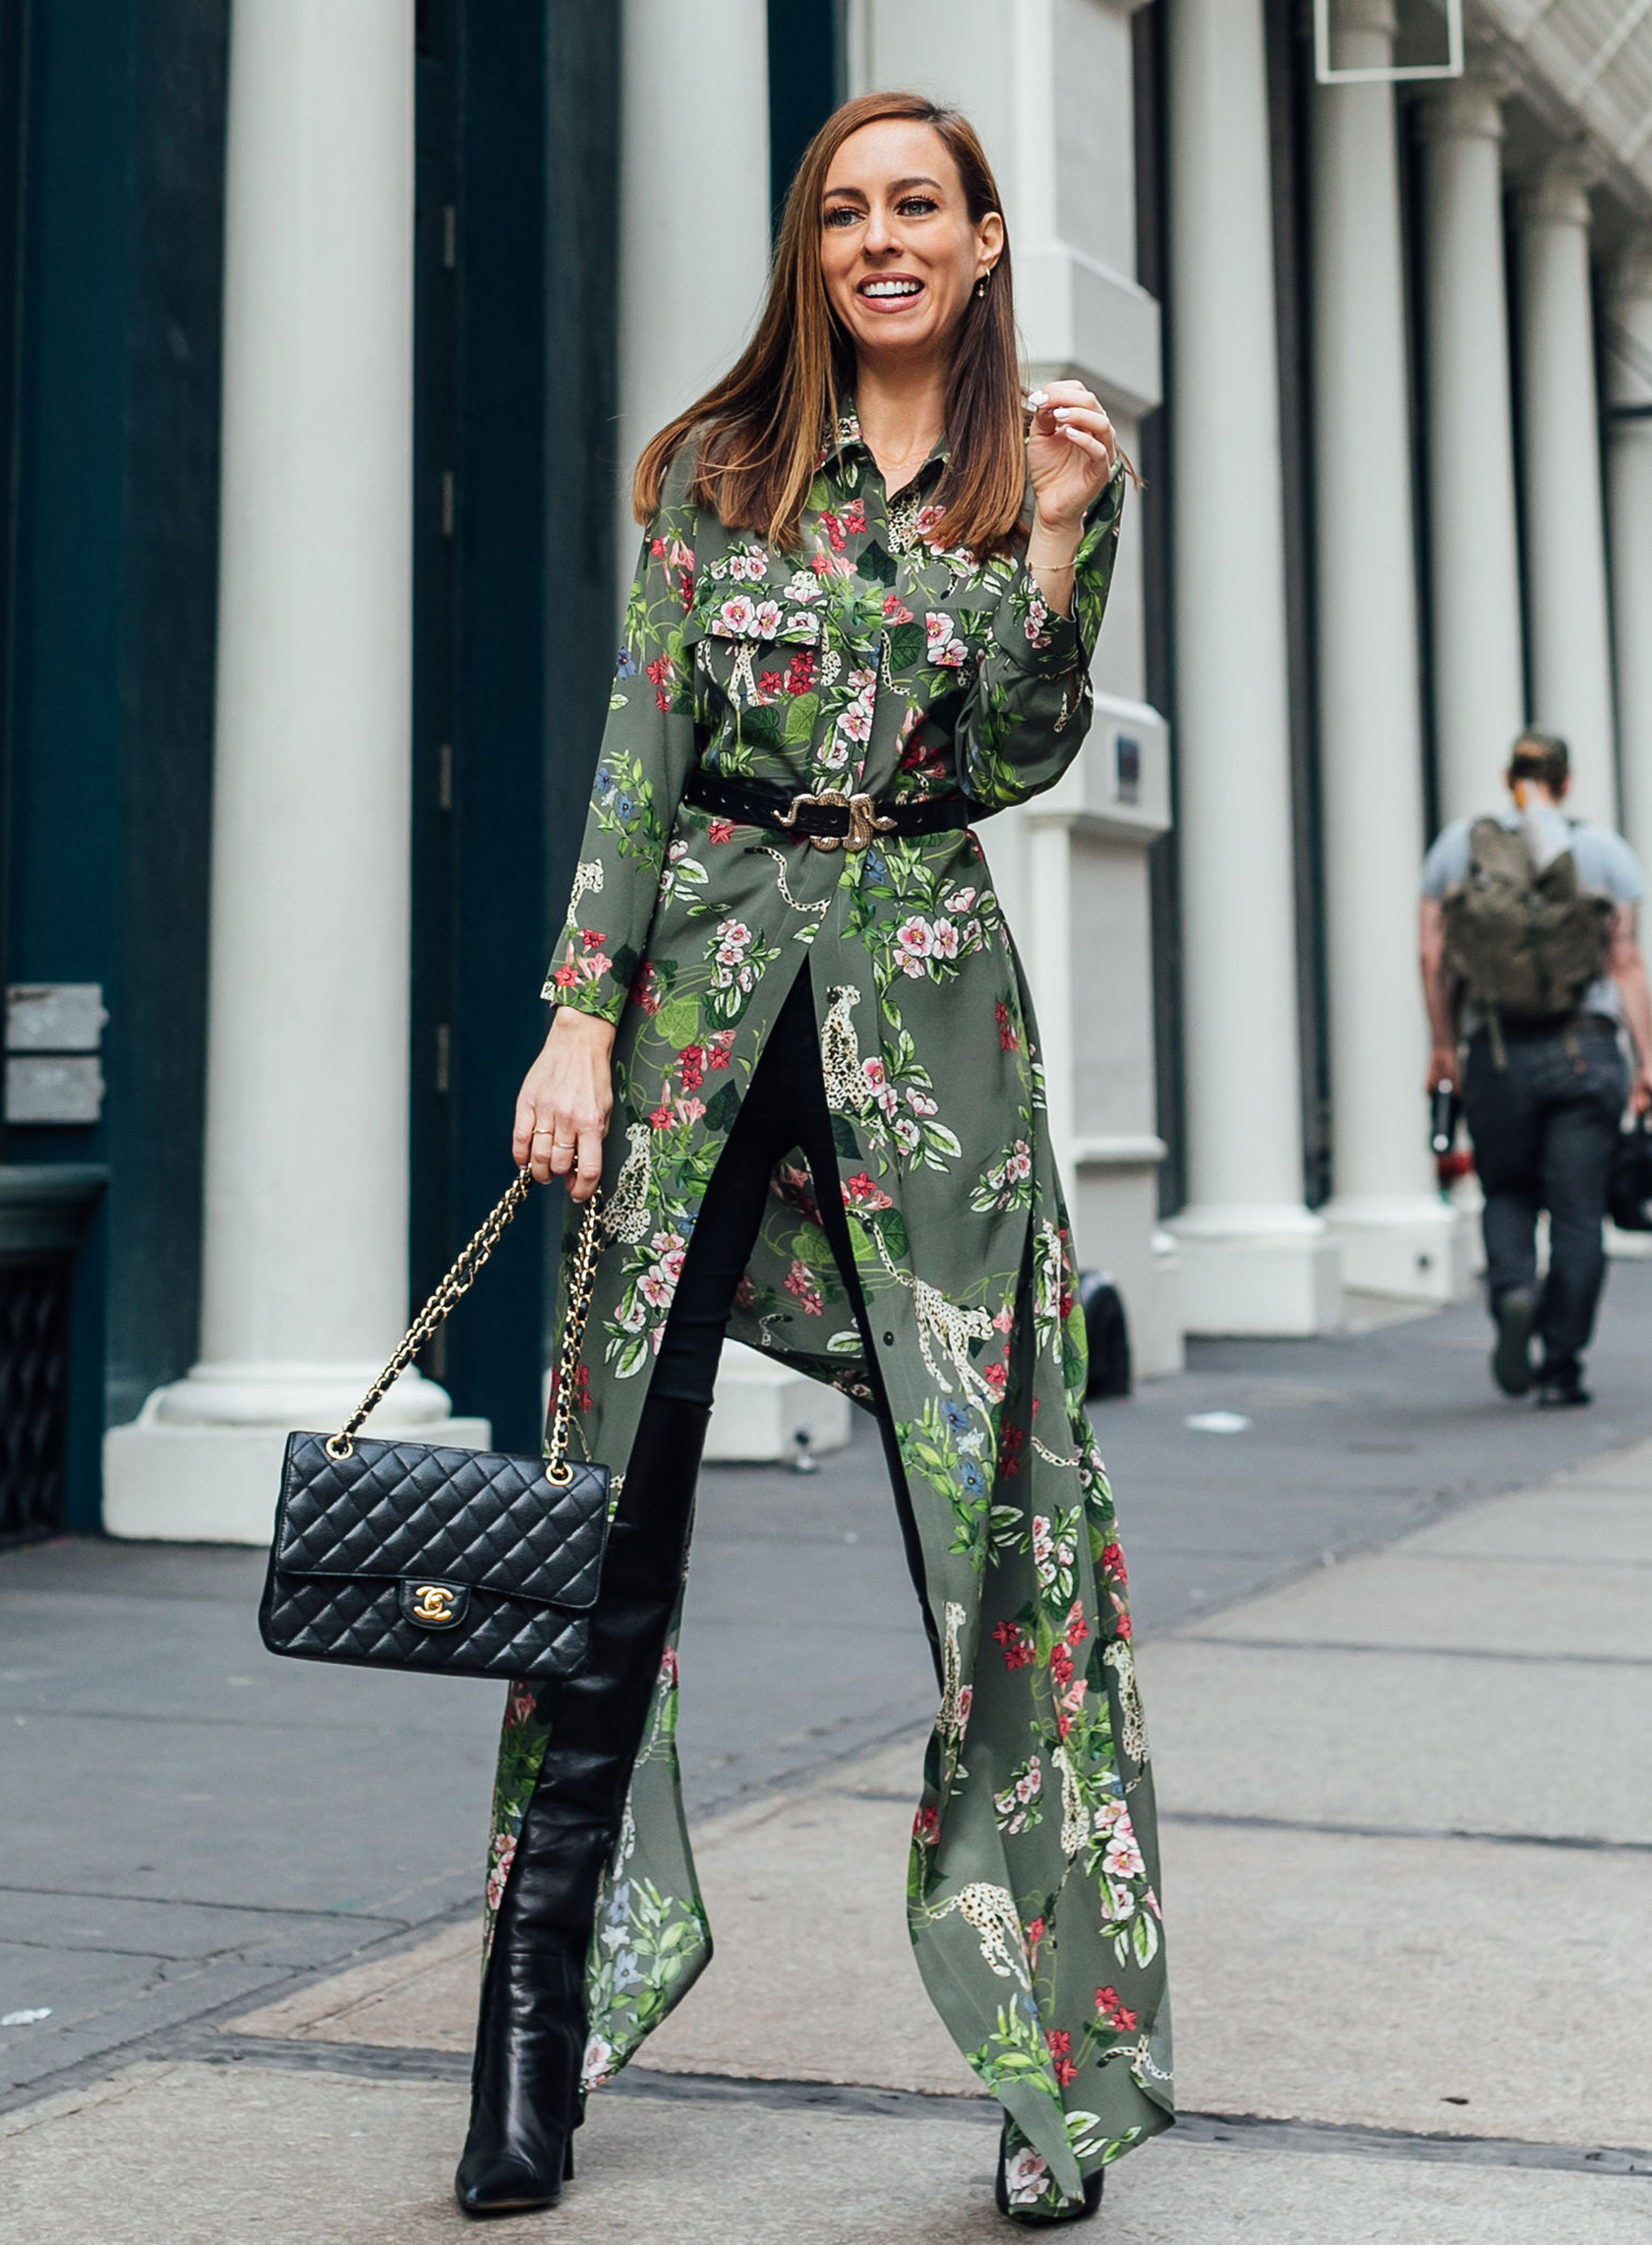 Sydne Style shows how to wear a shirtdress with jeans in l'agence at fashion week